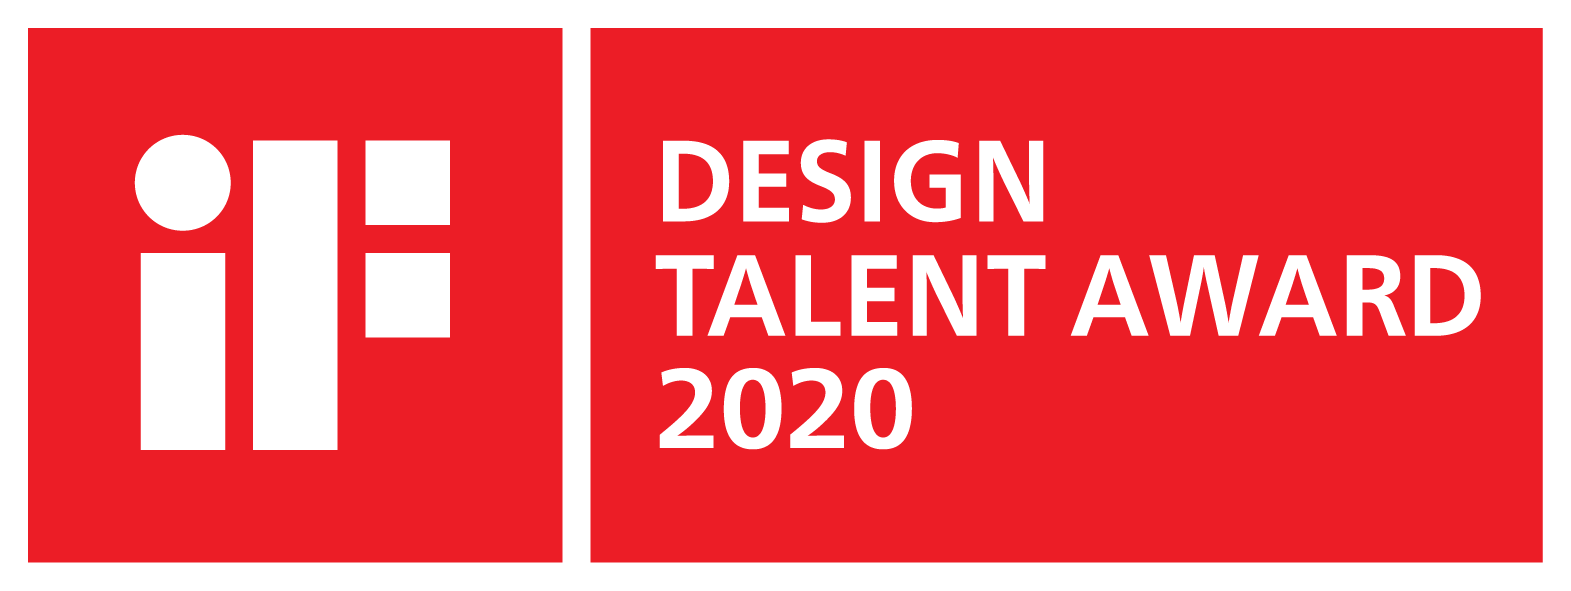 iF DESIGN TALENT AWARD_02 2020